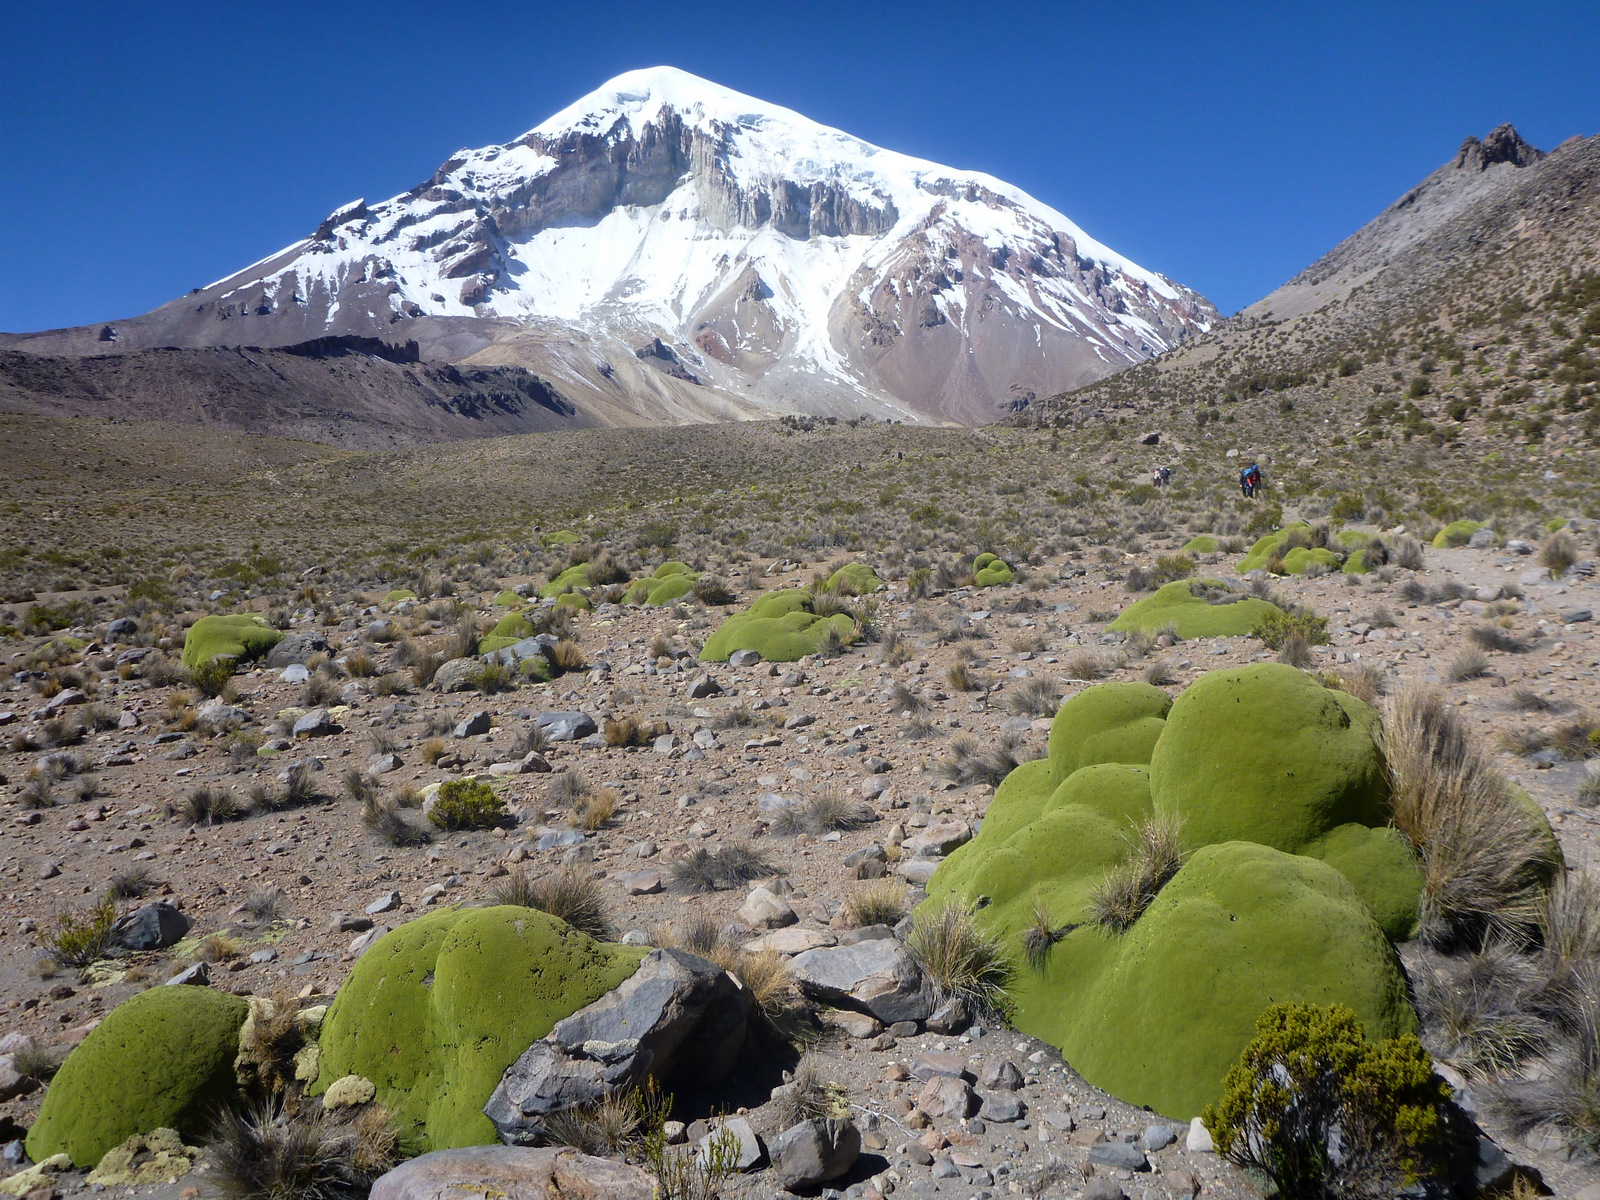 Sajama and millenar Llareta plants